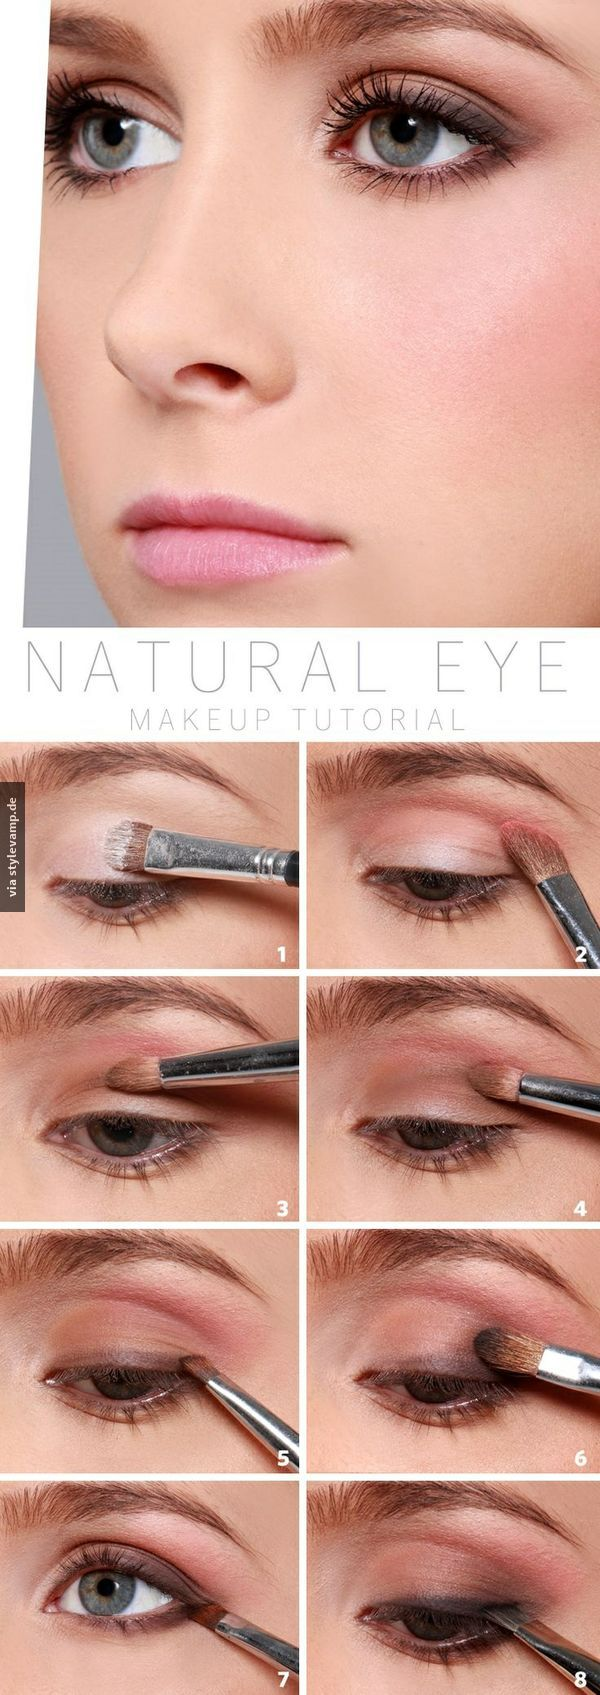 Natural Eye Make-up